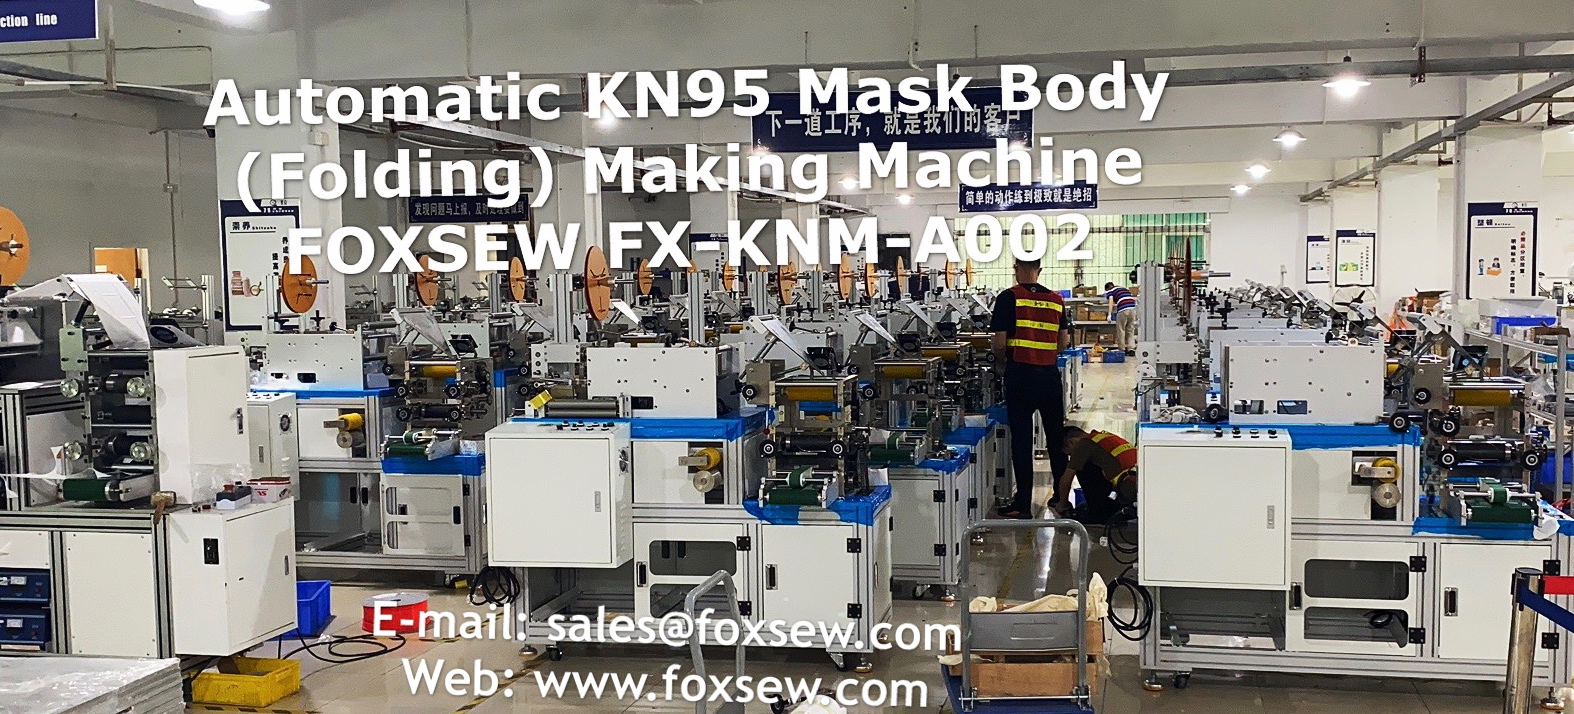 Automatic KN95 Mask Making Machine -16